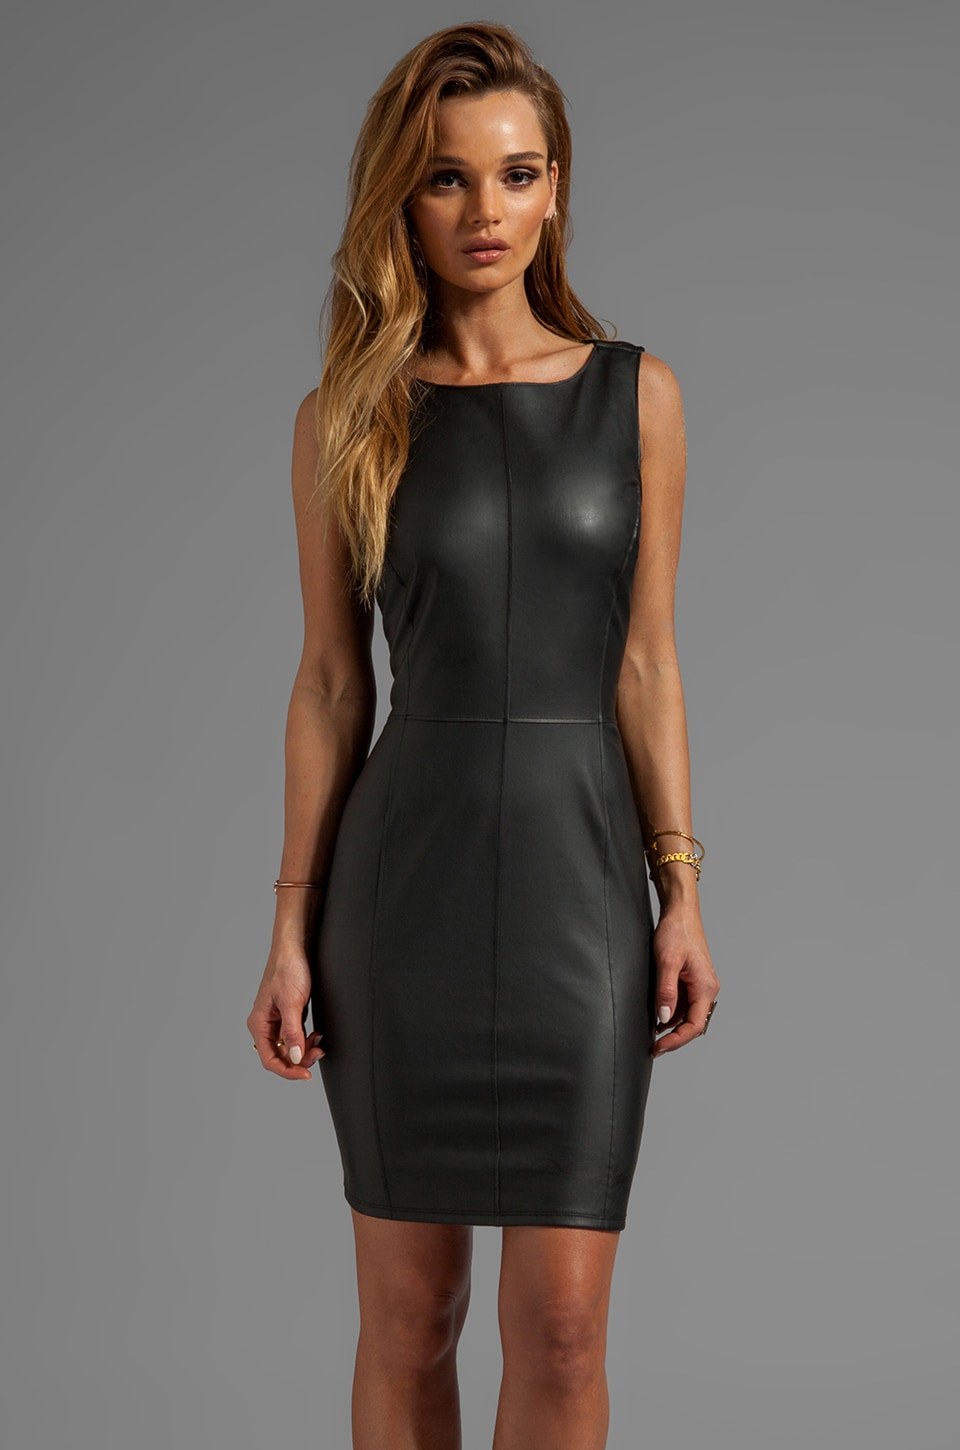 Velvet by Graham & Spencer Marjory Ponti w/ Faux Leather Dress in Black